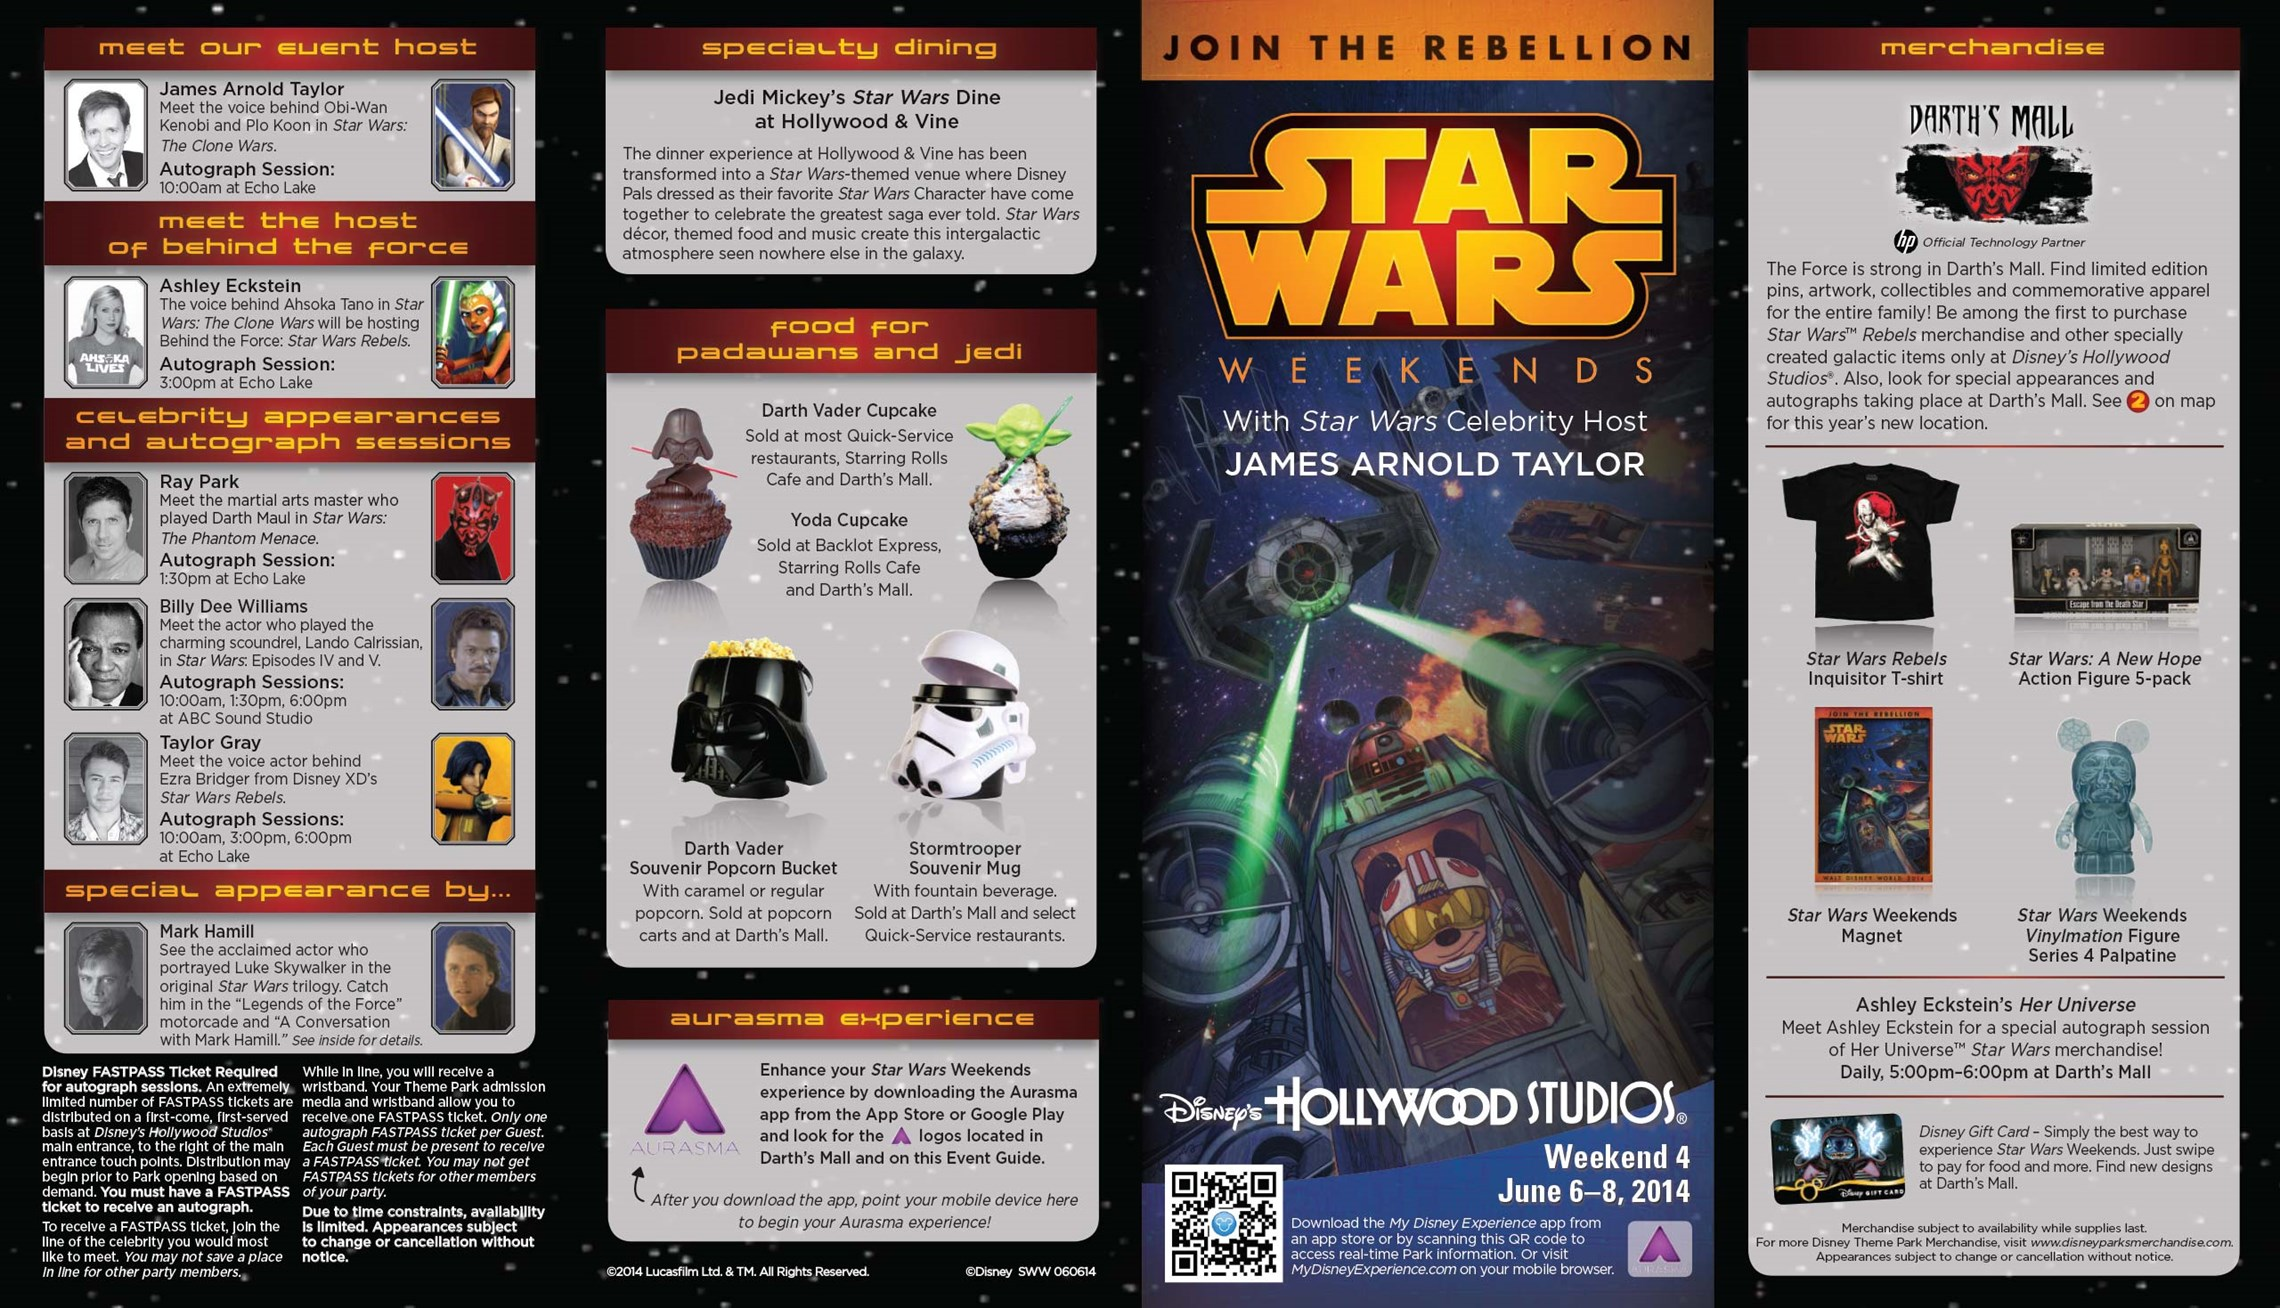 2014 Star Wars Weekends June 6 - 8 Weekend 4 guide map